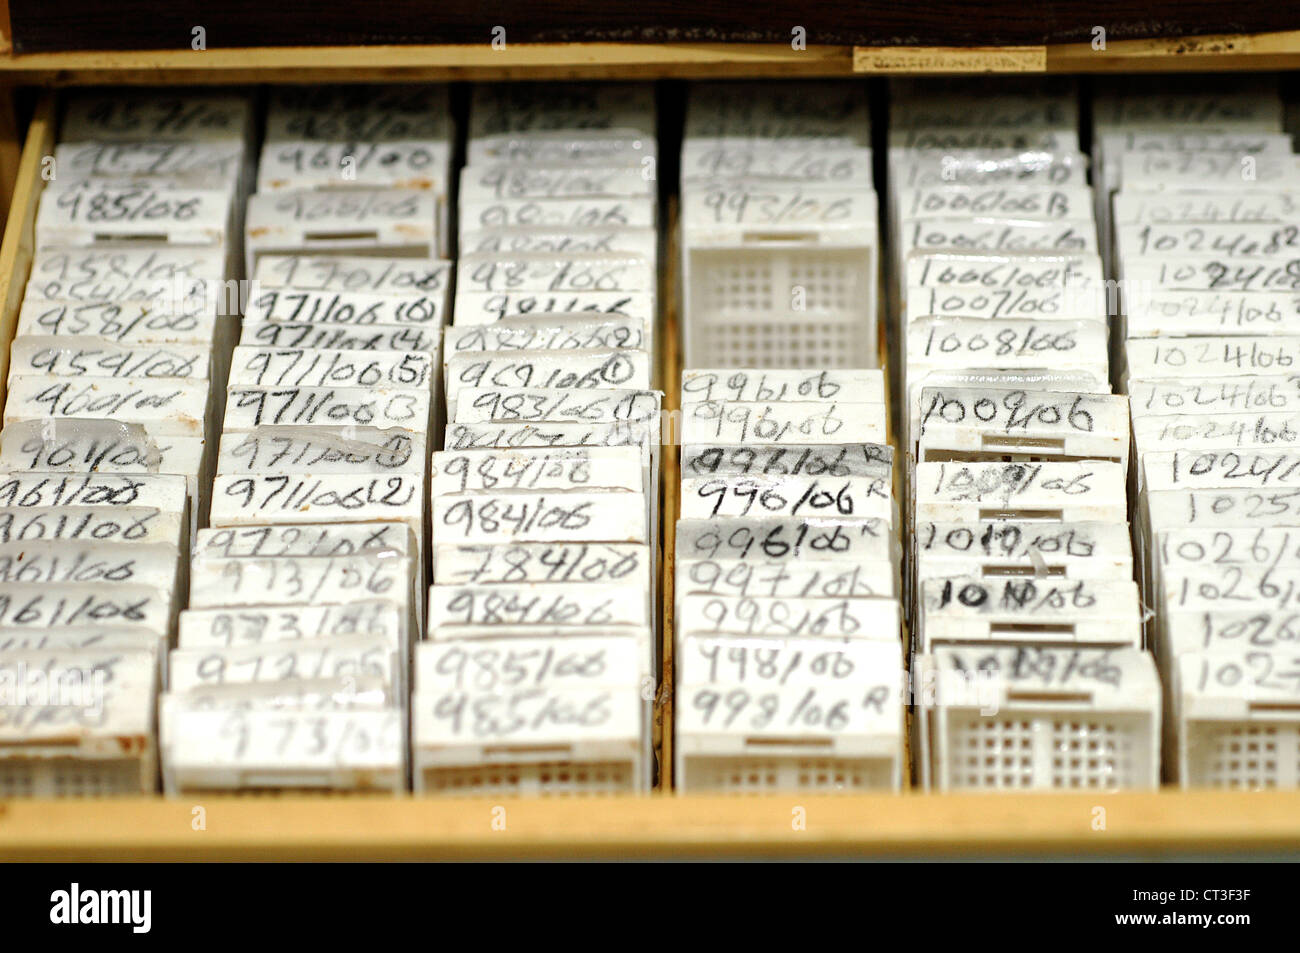 An array of microscope slides about to be examined for any signs of pathology. - Stock Image